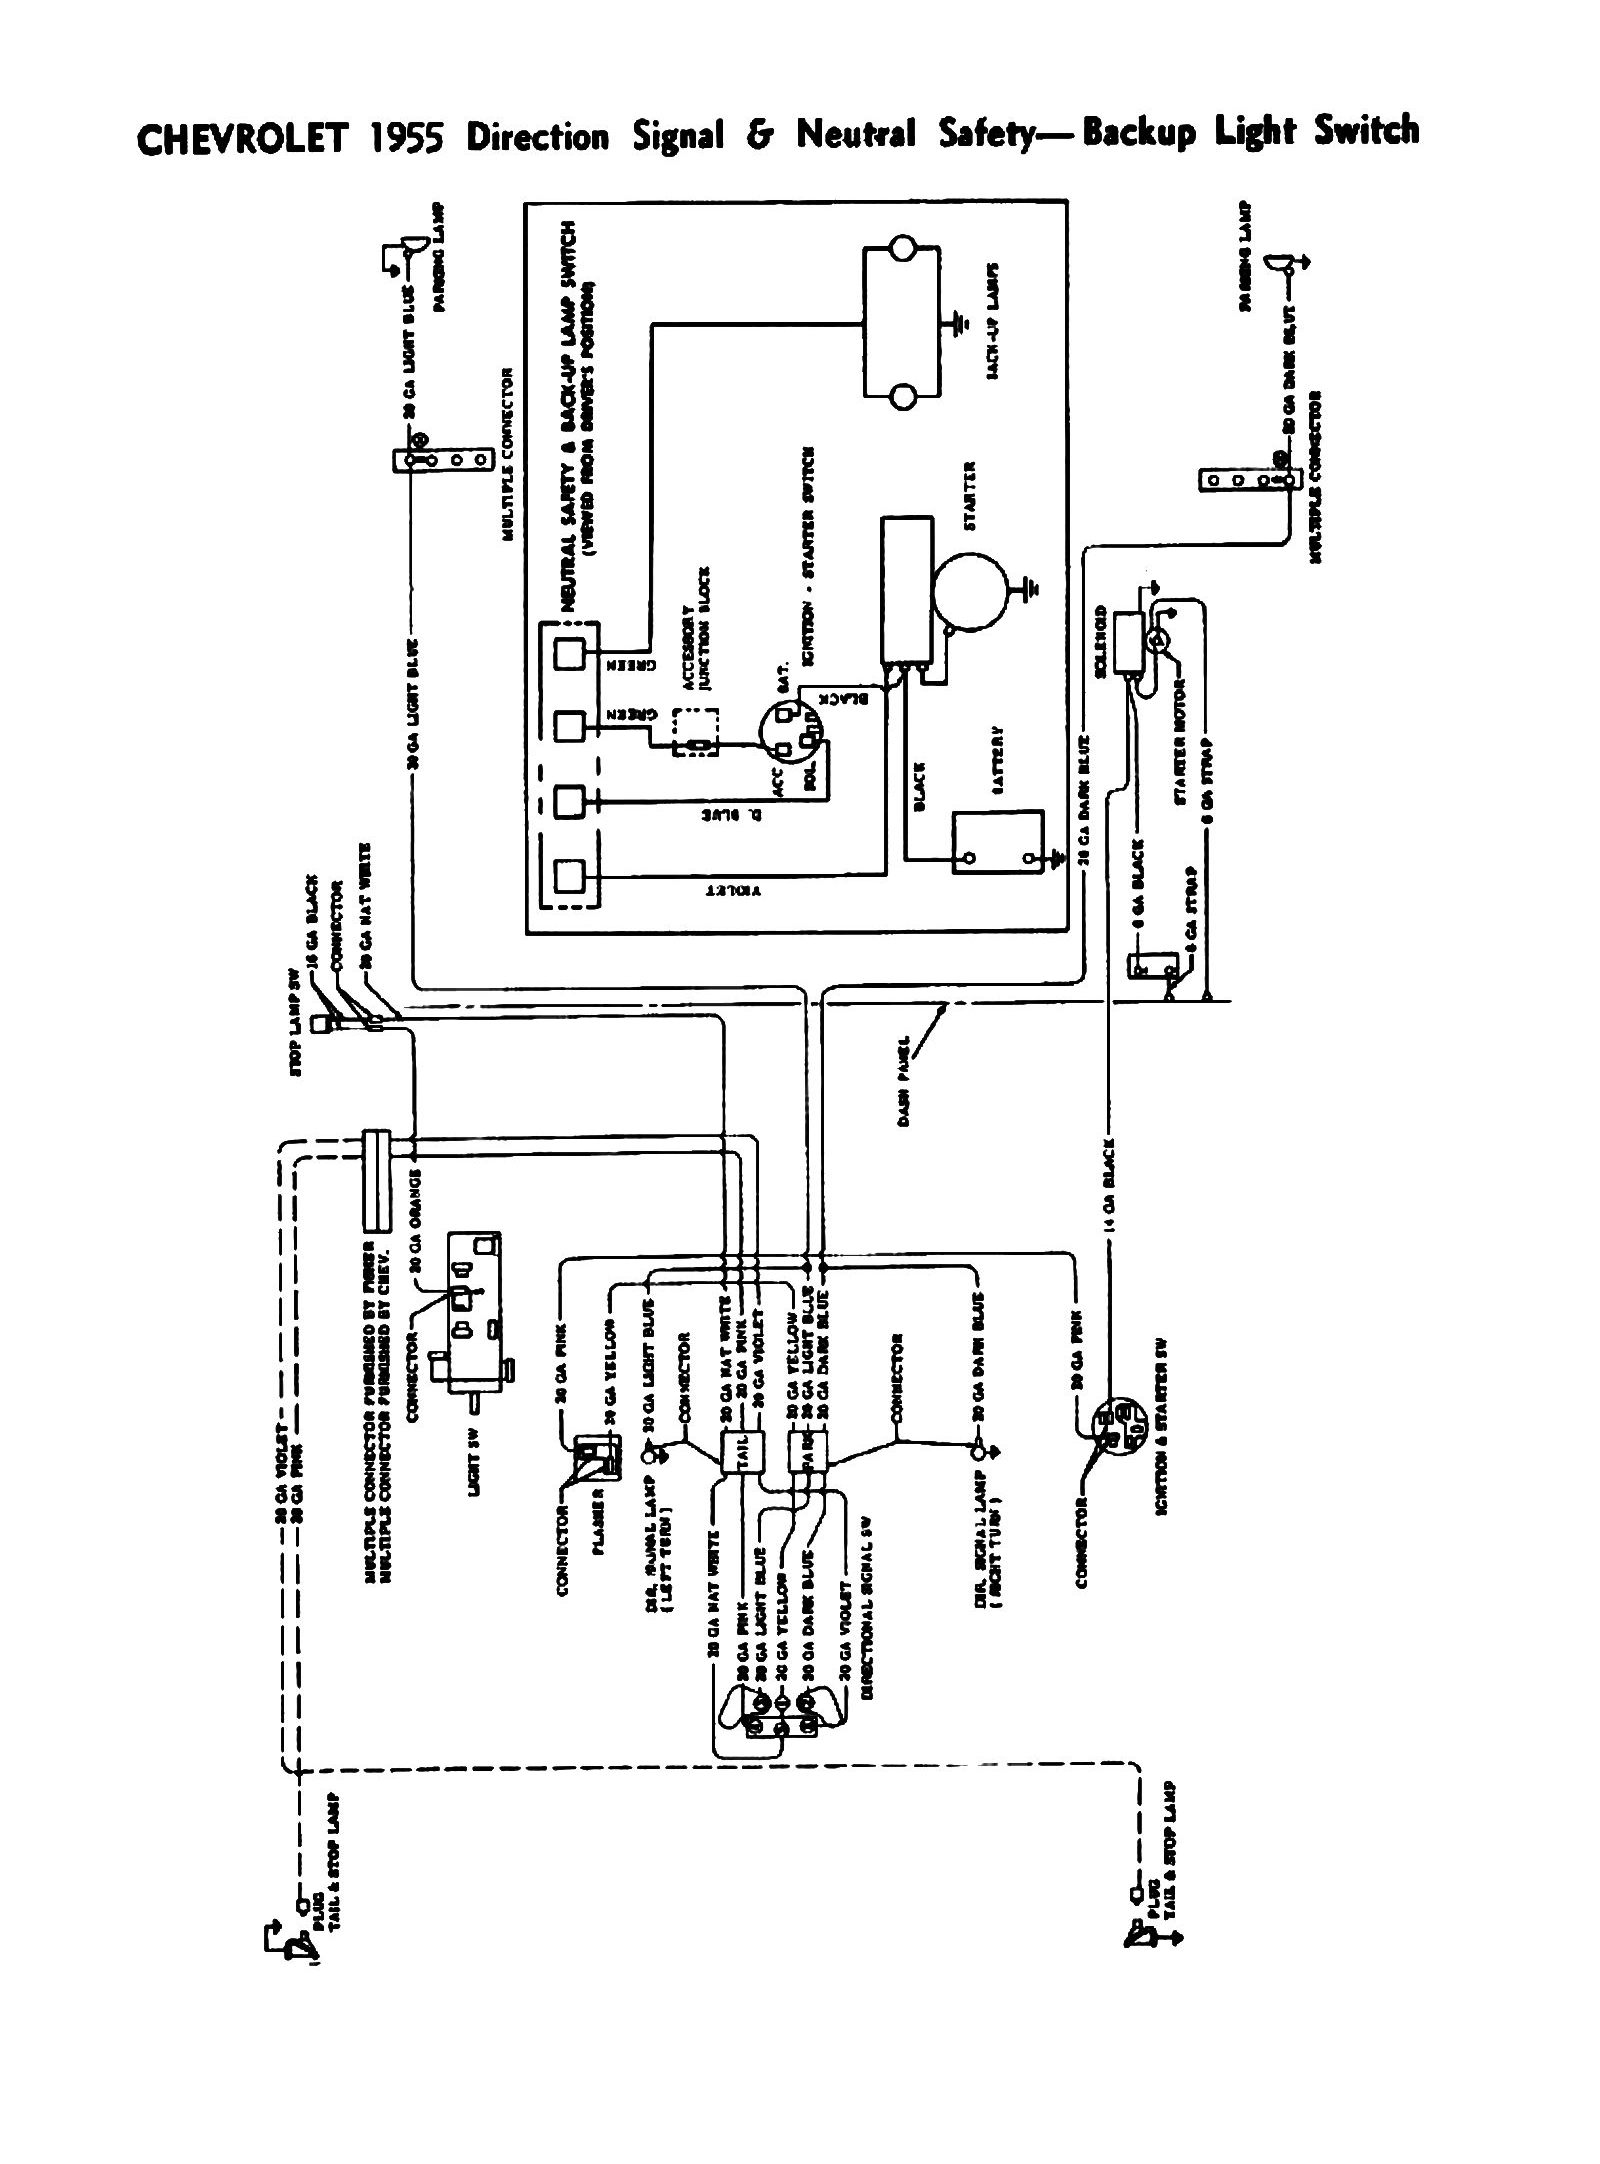 55signal chevy wiring diagrams chevy ignition switch diagram at crackthecode.co